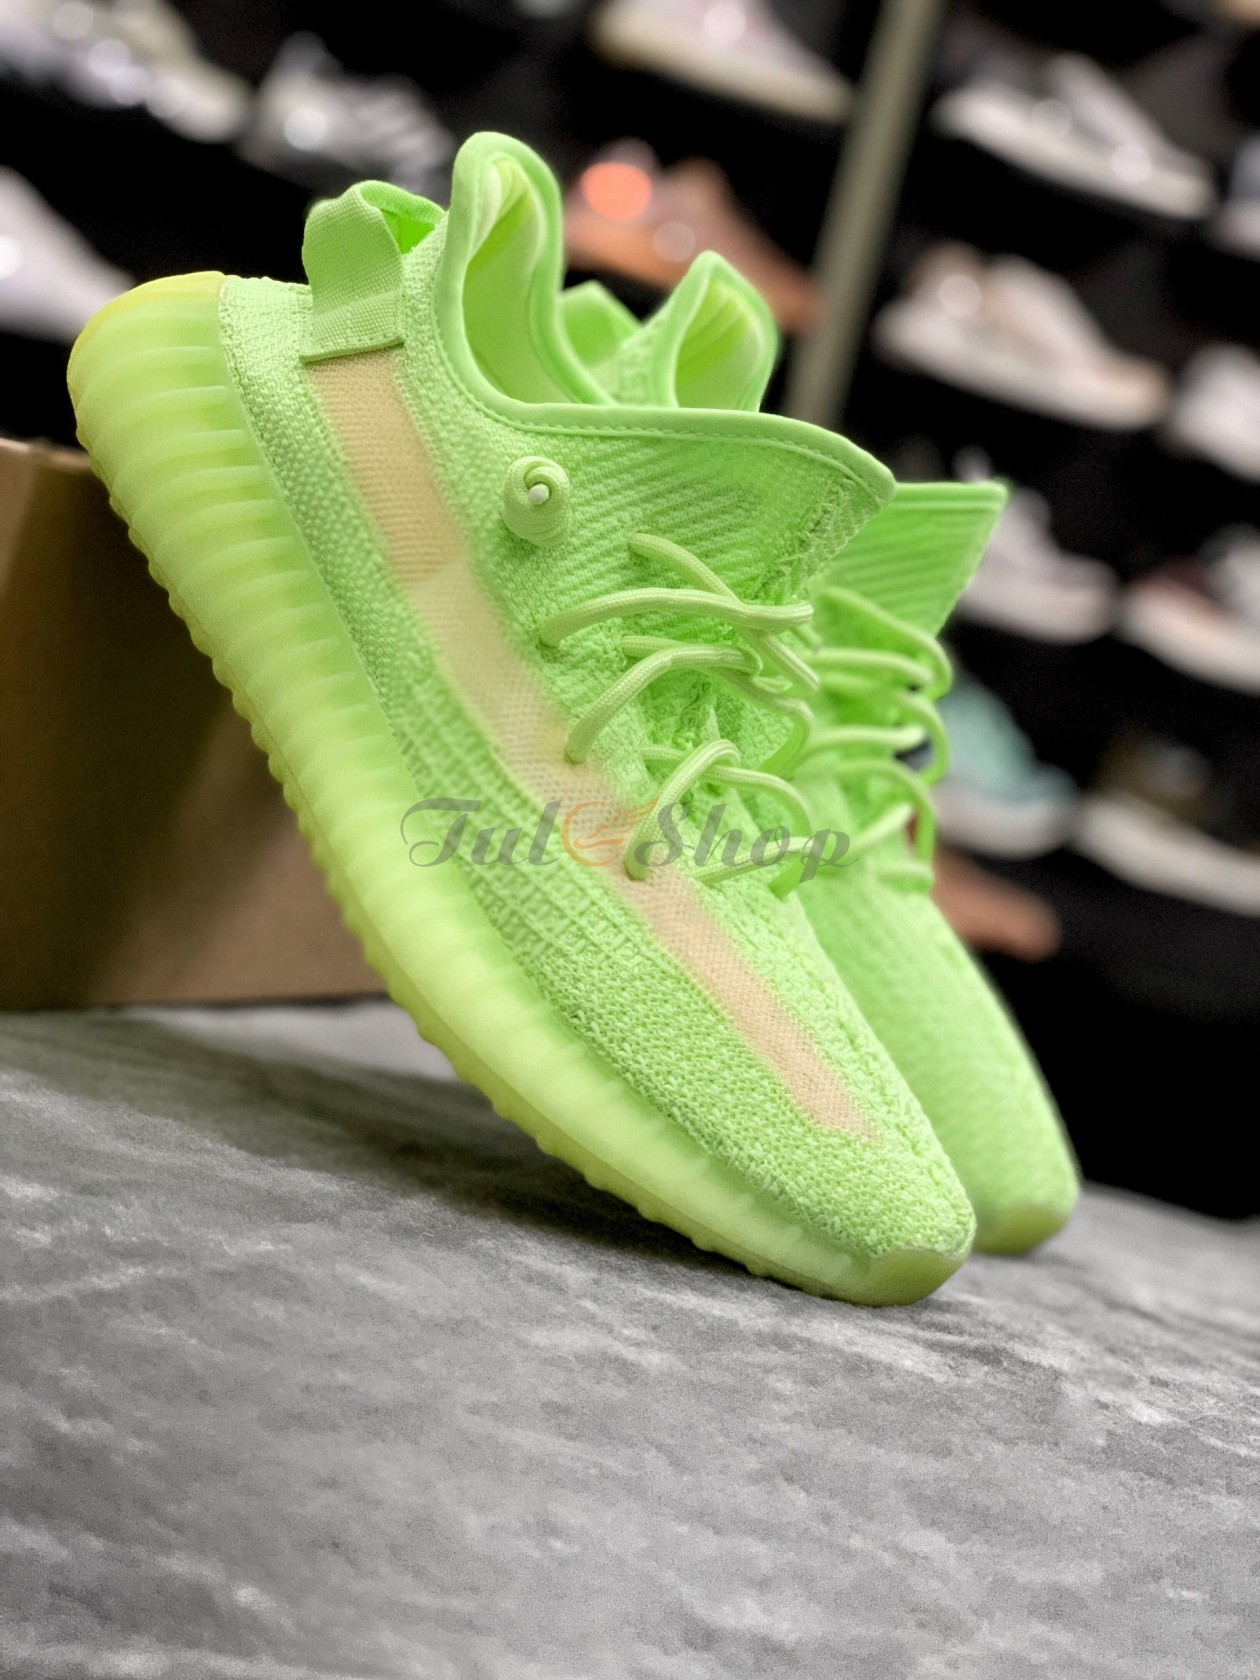 Yeezy 350 glow in the dark